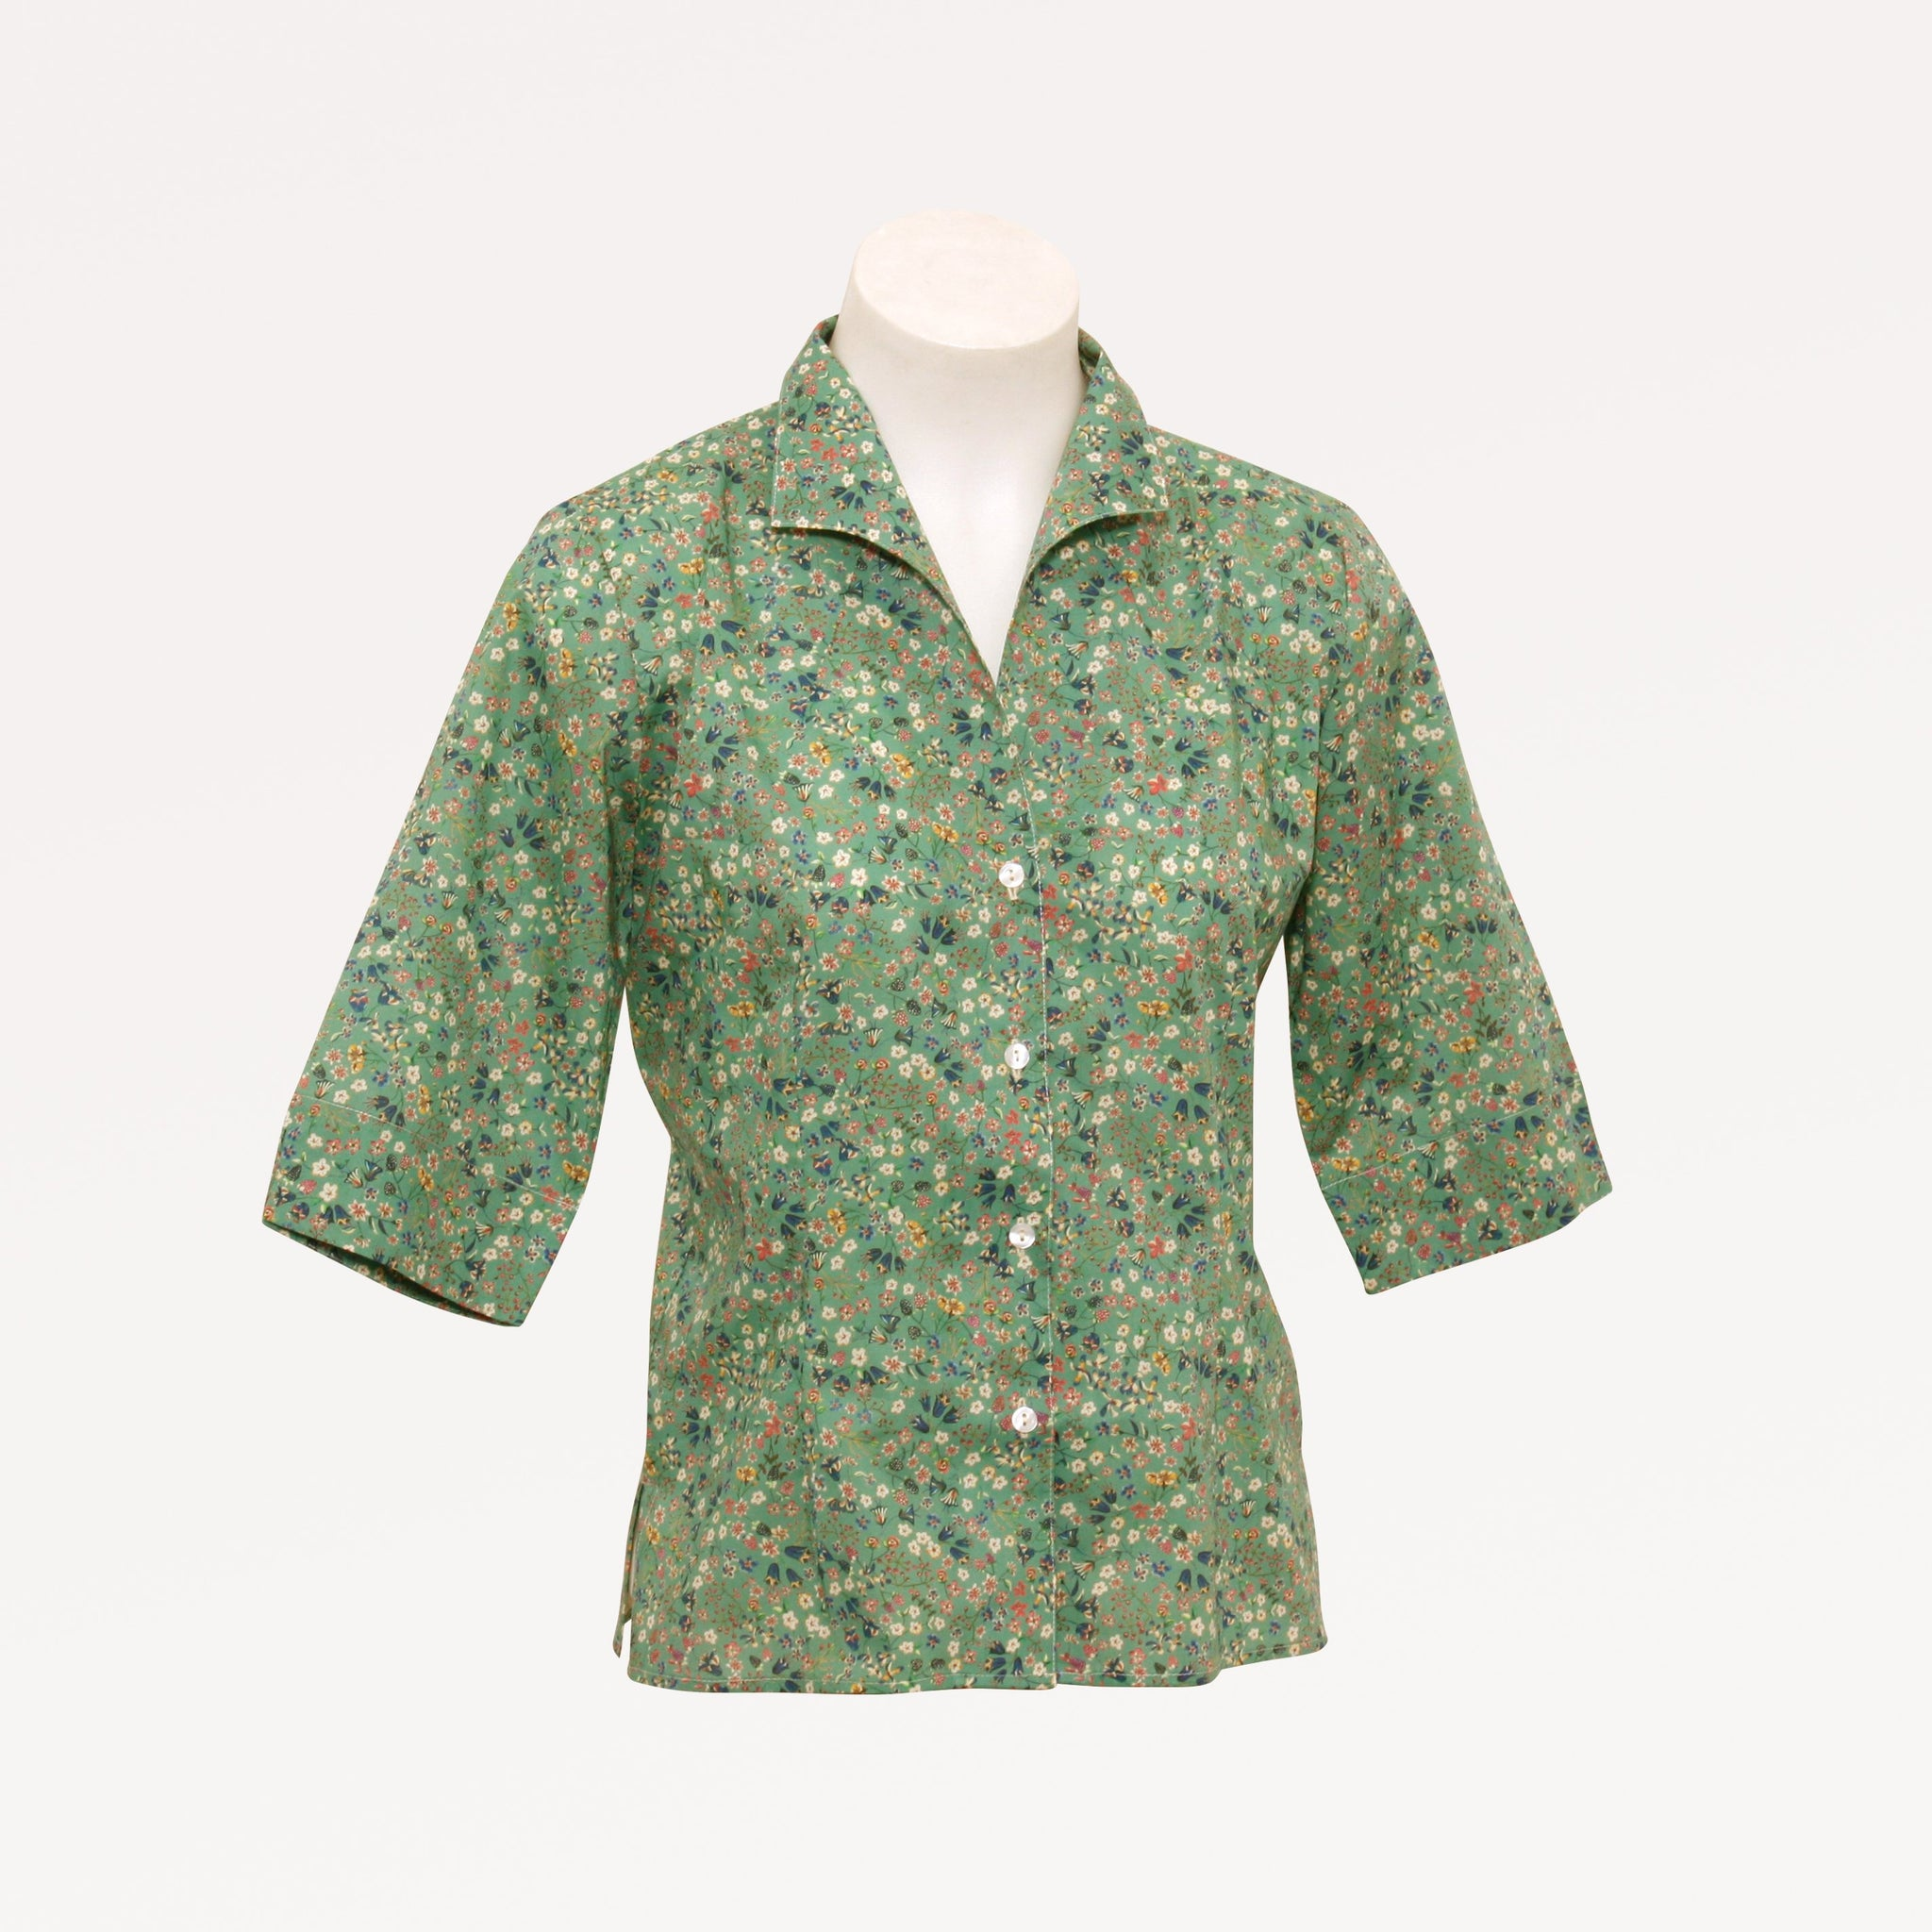 Liberty of London Blouse - Donna Leigh